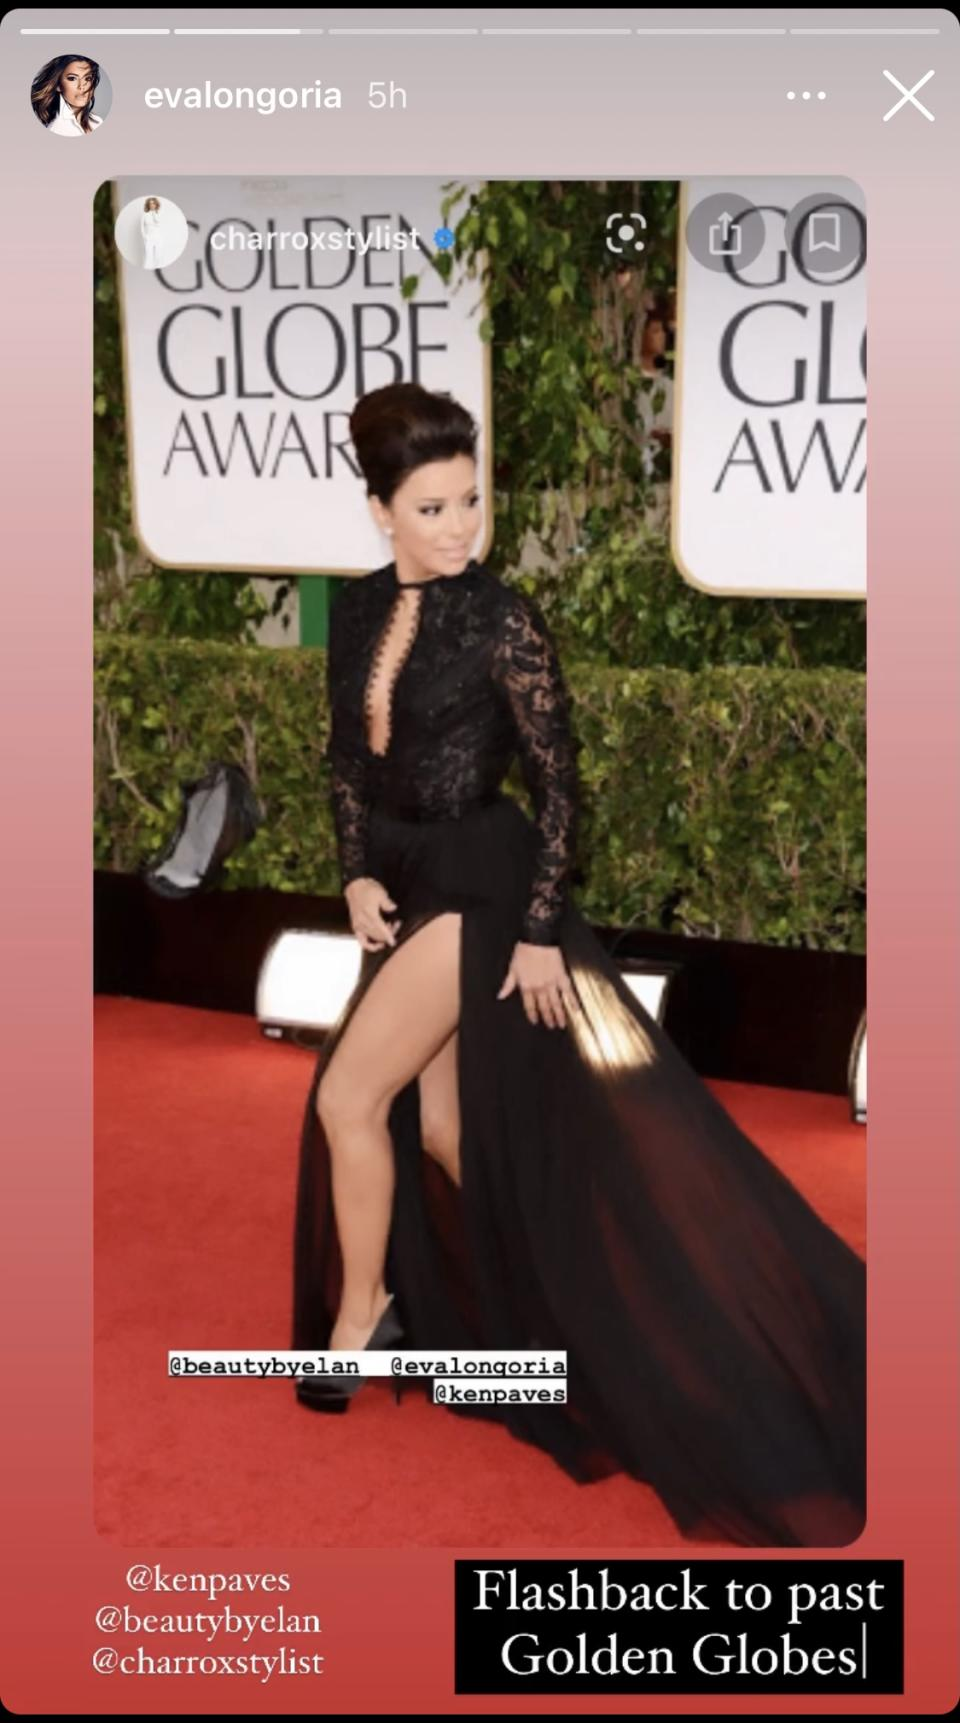 <p>For her second fashion throwback, Longoria shared a photo of herself at the 2013 Golden Globes. For that year's red carpet, she opted for a sultry lace and chiffon Emilio Pucci gown that featured a sky-high slit. Image via Instagram/EvaLongoria.</p>